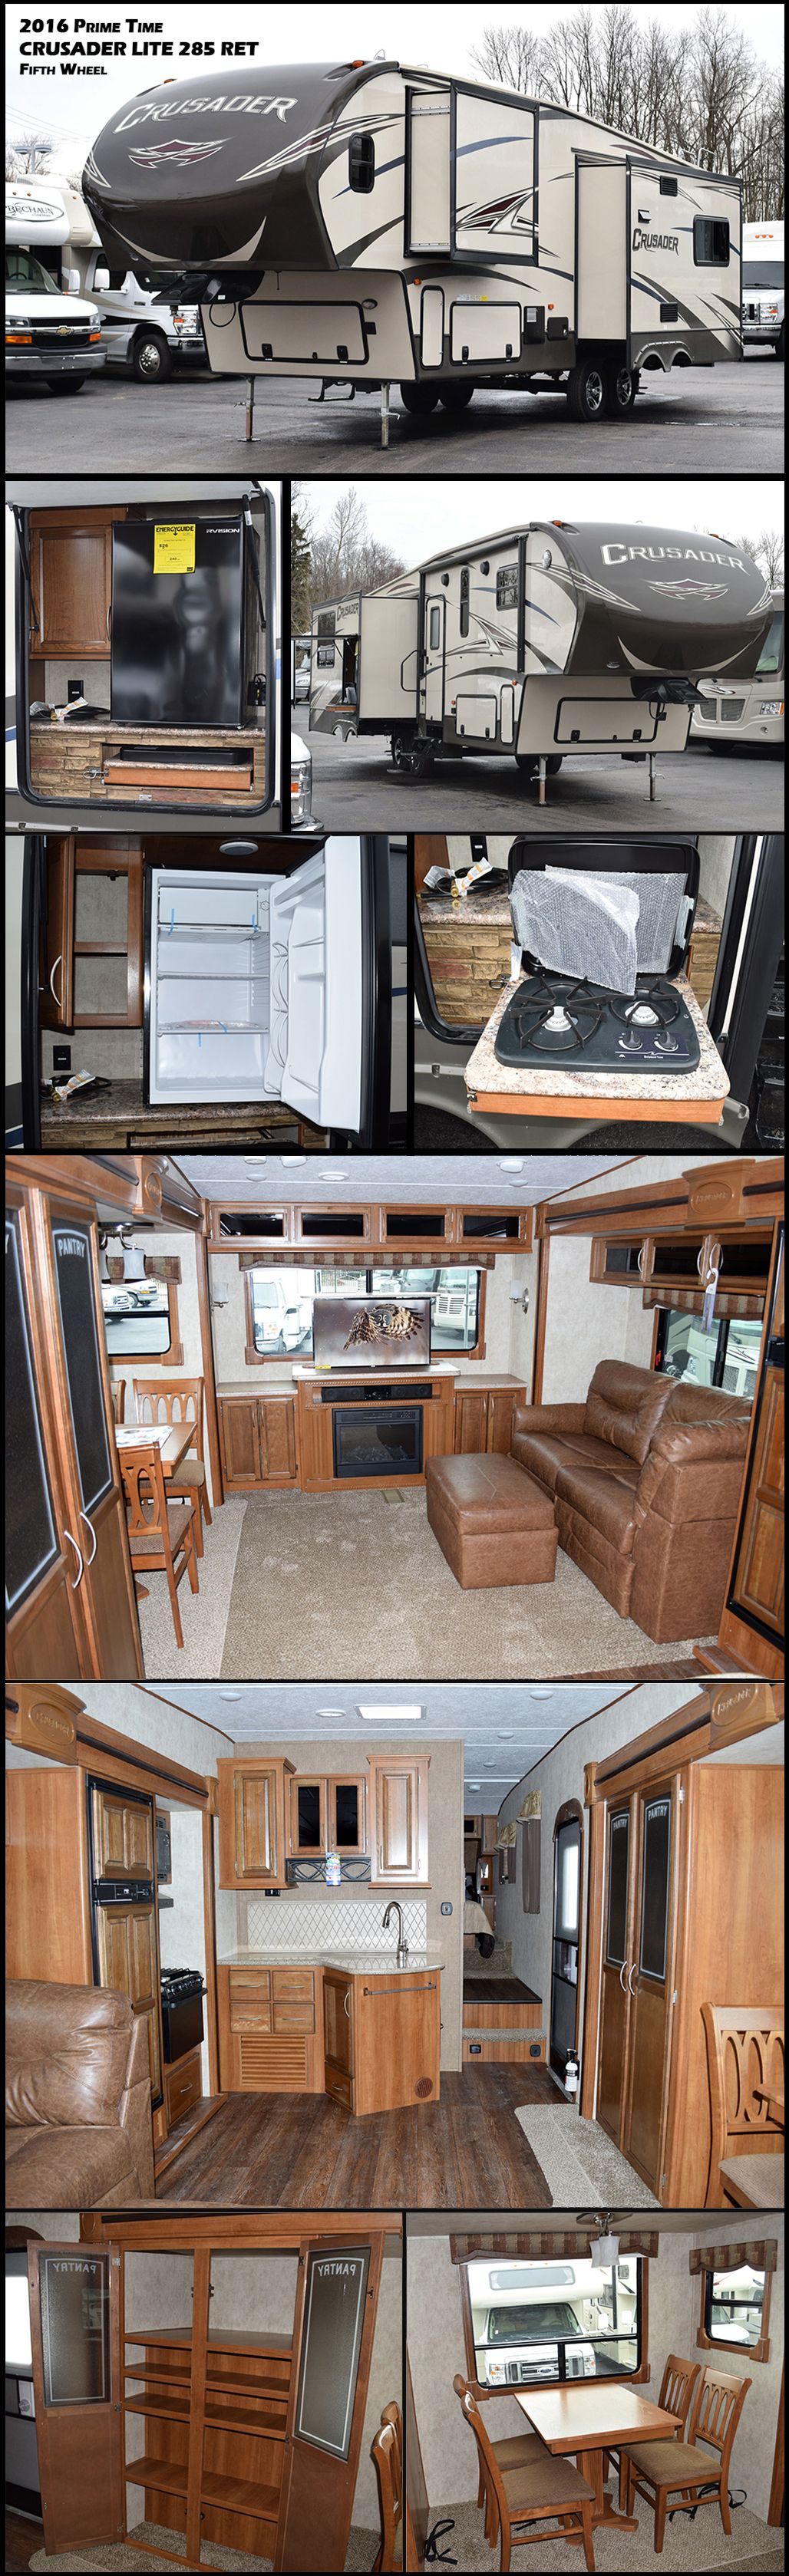 the 2016 prime time crusader lite 285ret fifth wheel offers triple